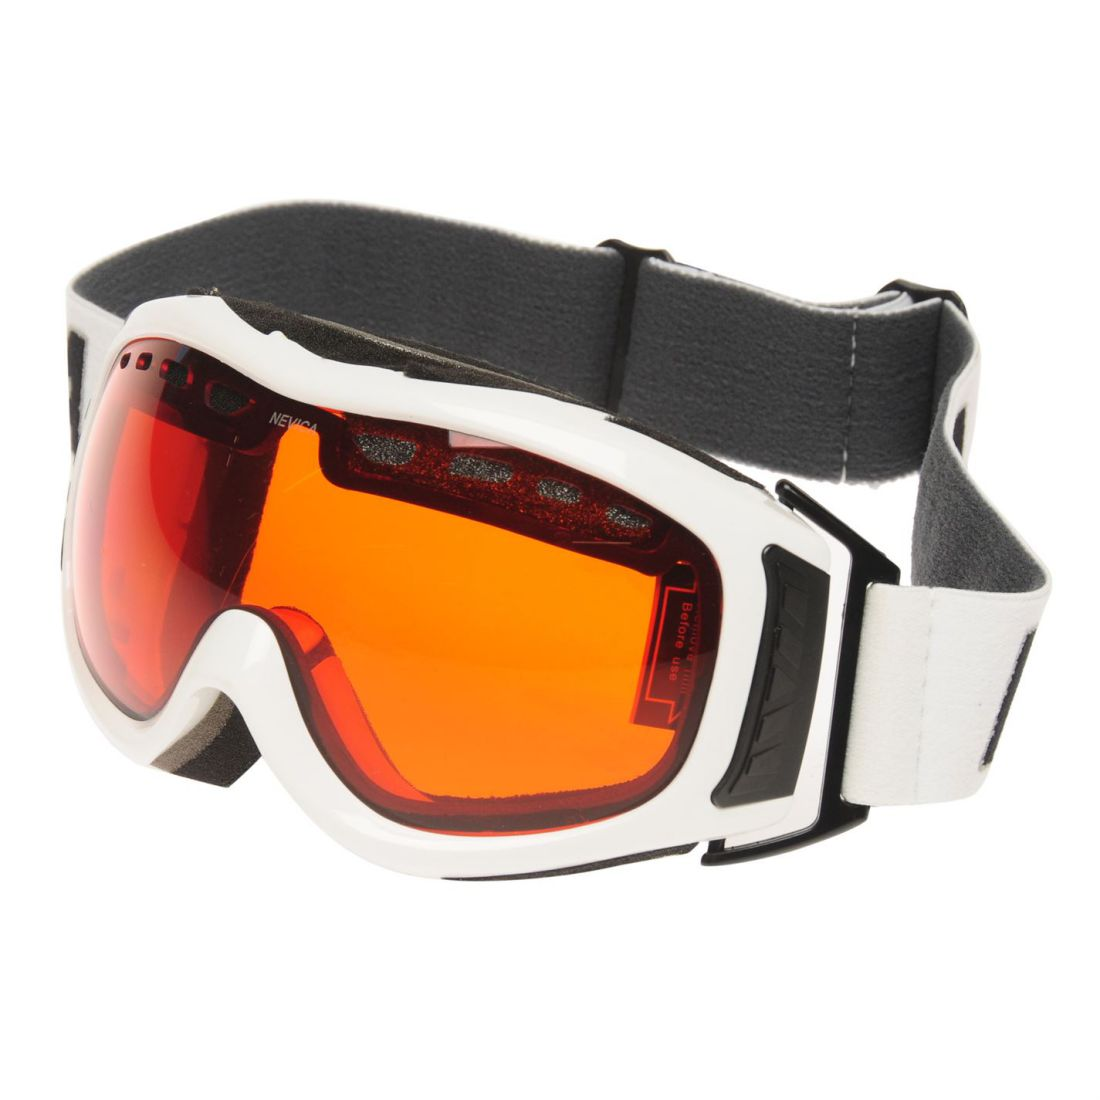 Image is loading Nevica-Mens-Meribel-Ski-Goggles-Anti-Fog-Headstrap cd0d06a9290